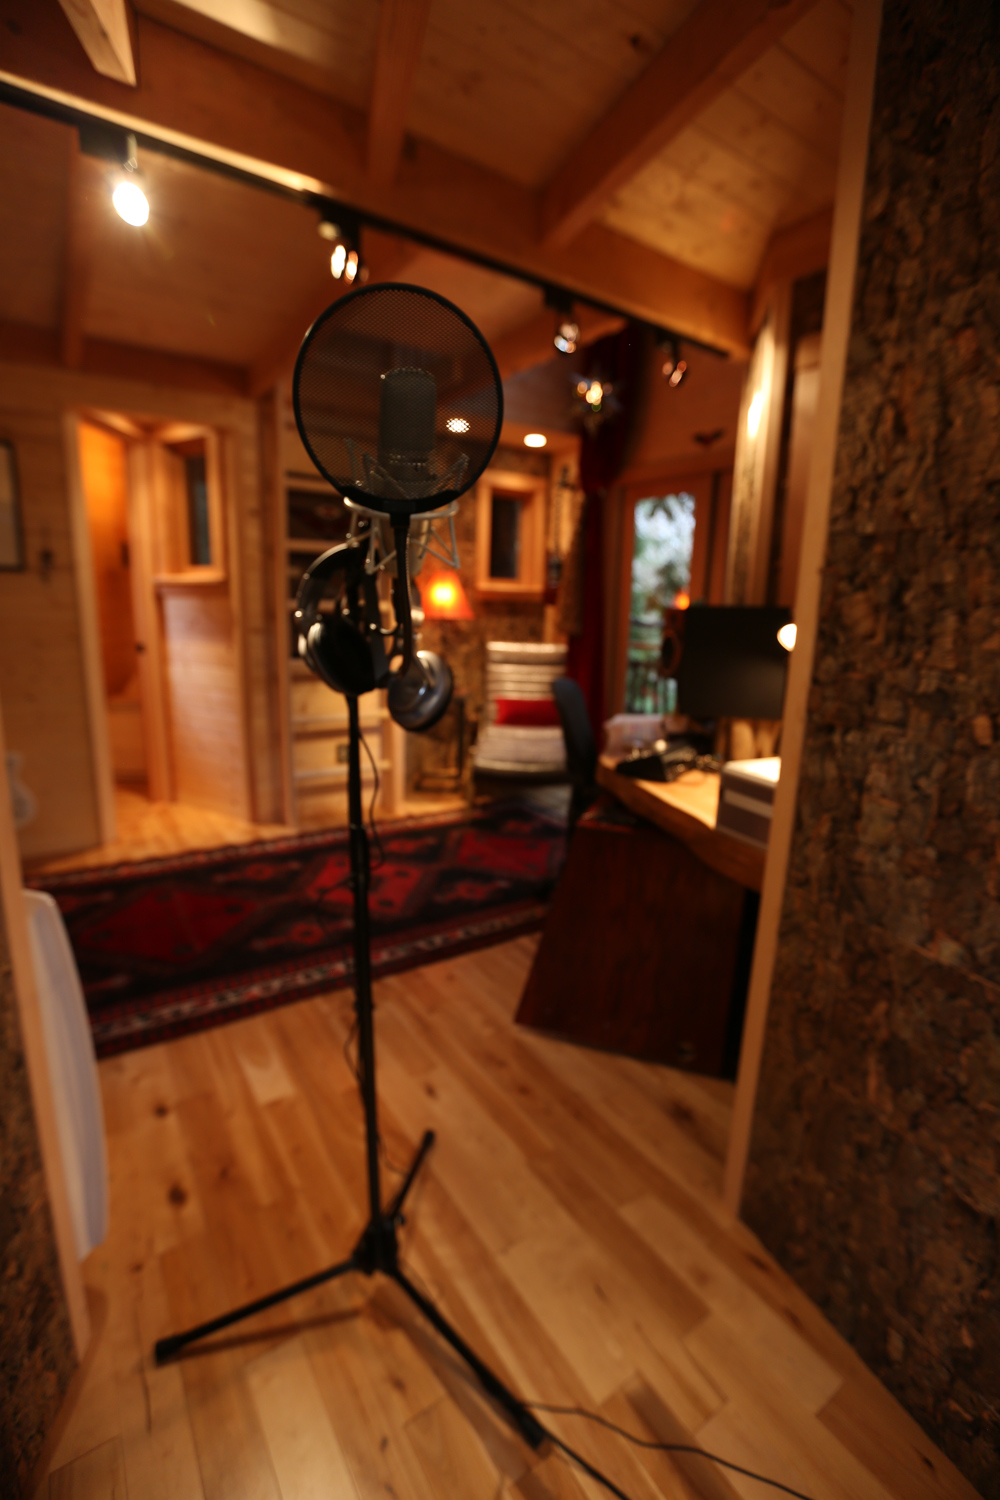 Nelson treehouse recording studio cork-line recording booth